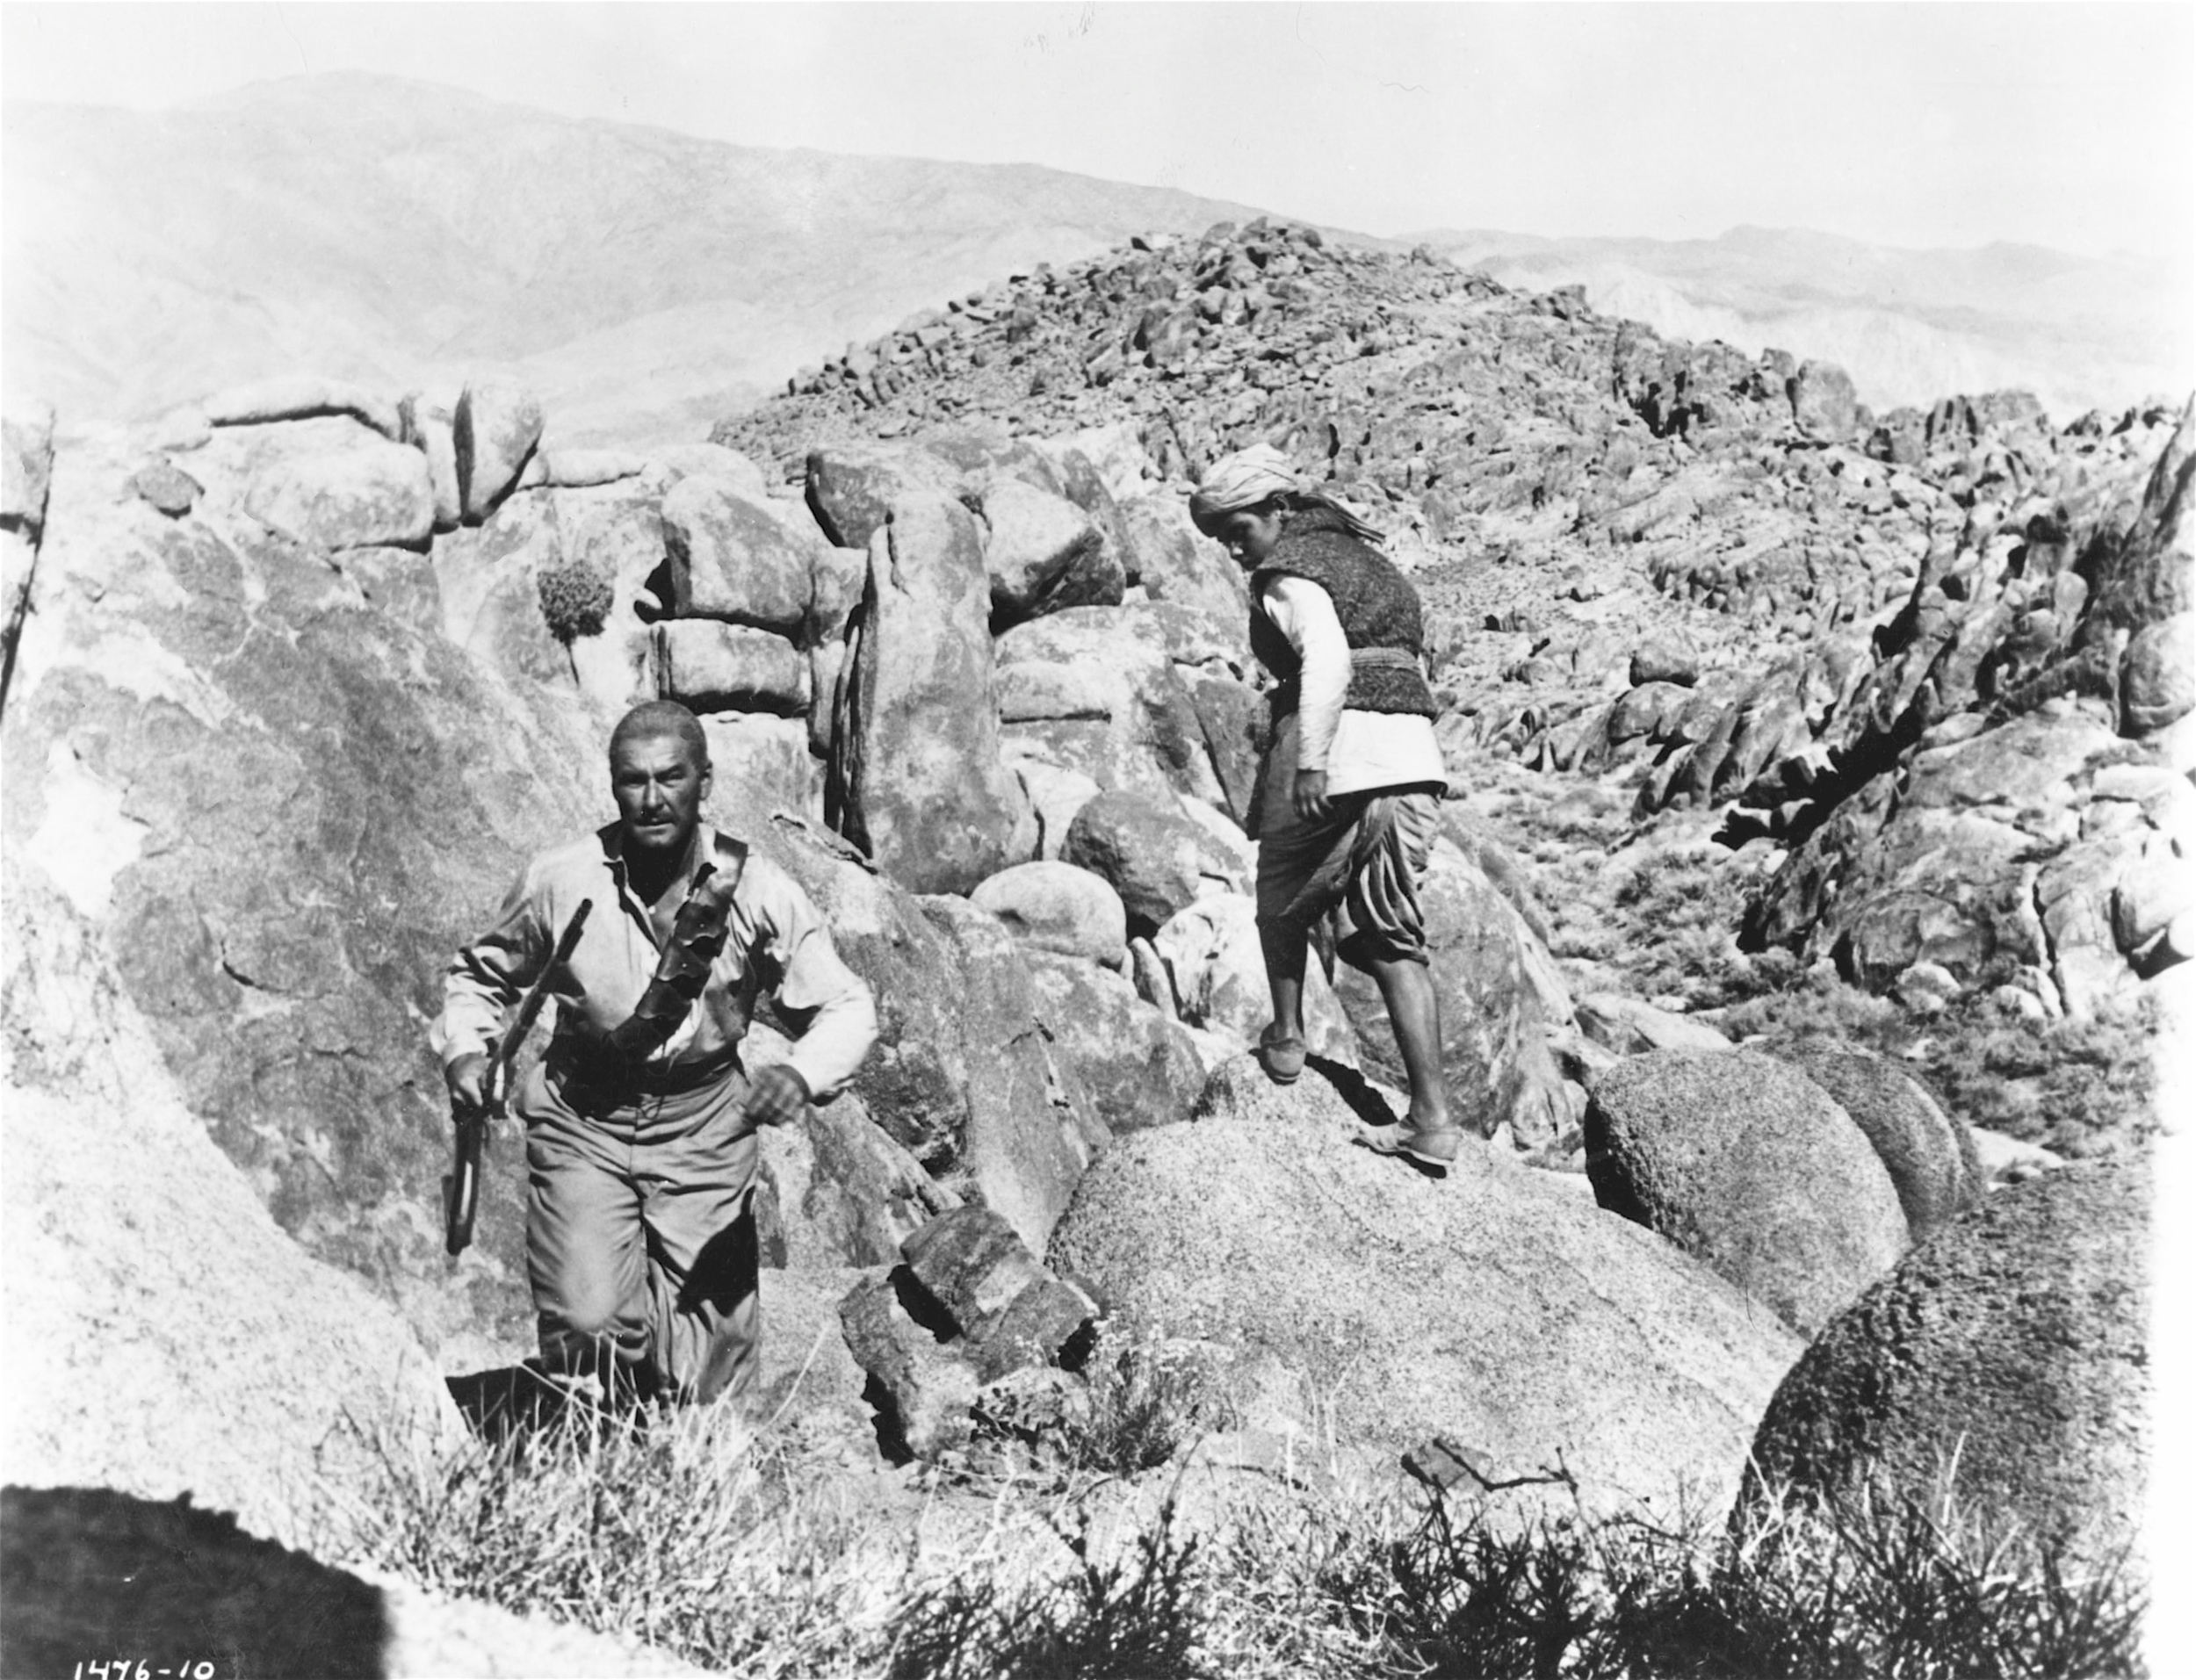 The film company came to the Alabama Hills because they look so much like the Khyber Pass.